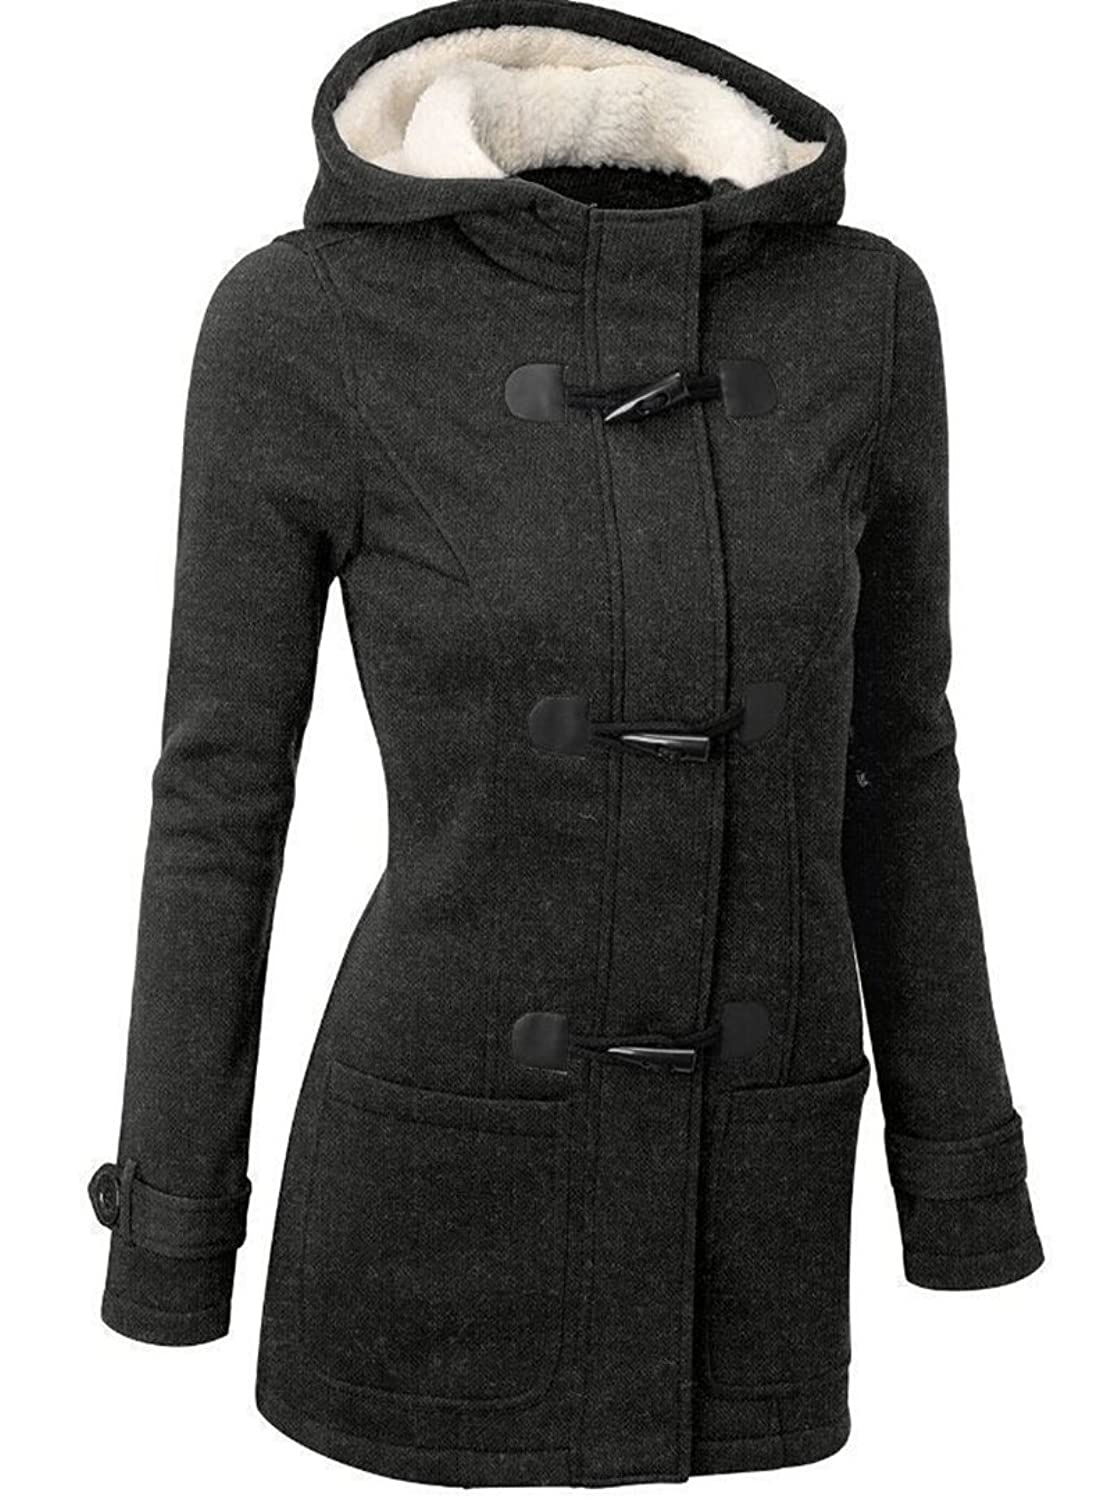 M.Brock Women's Wool Blend Pea Coat Outdoor Hooded Parka Jacket